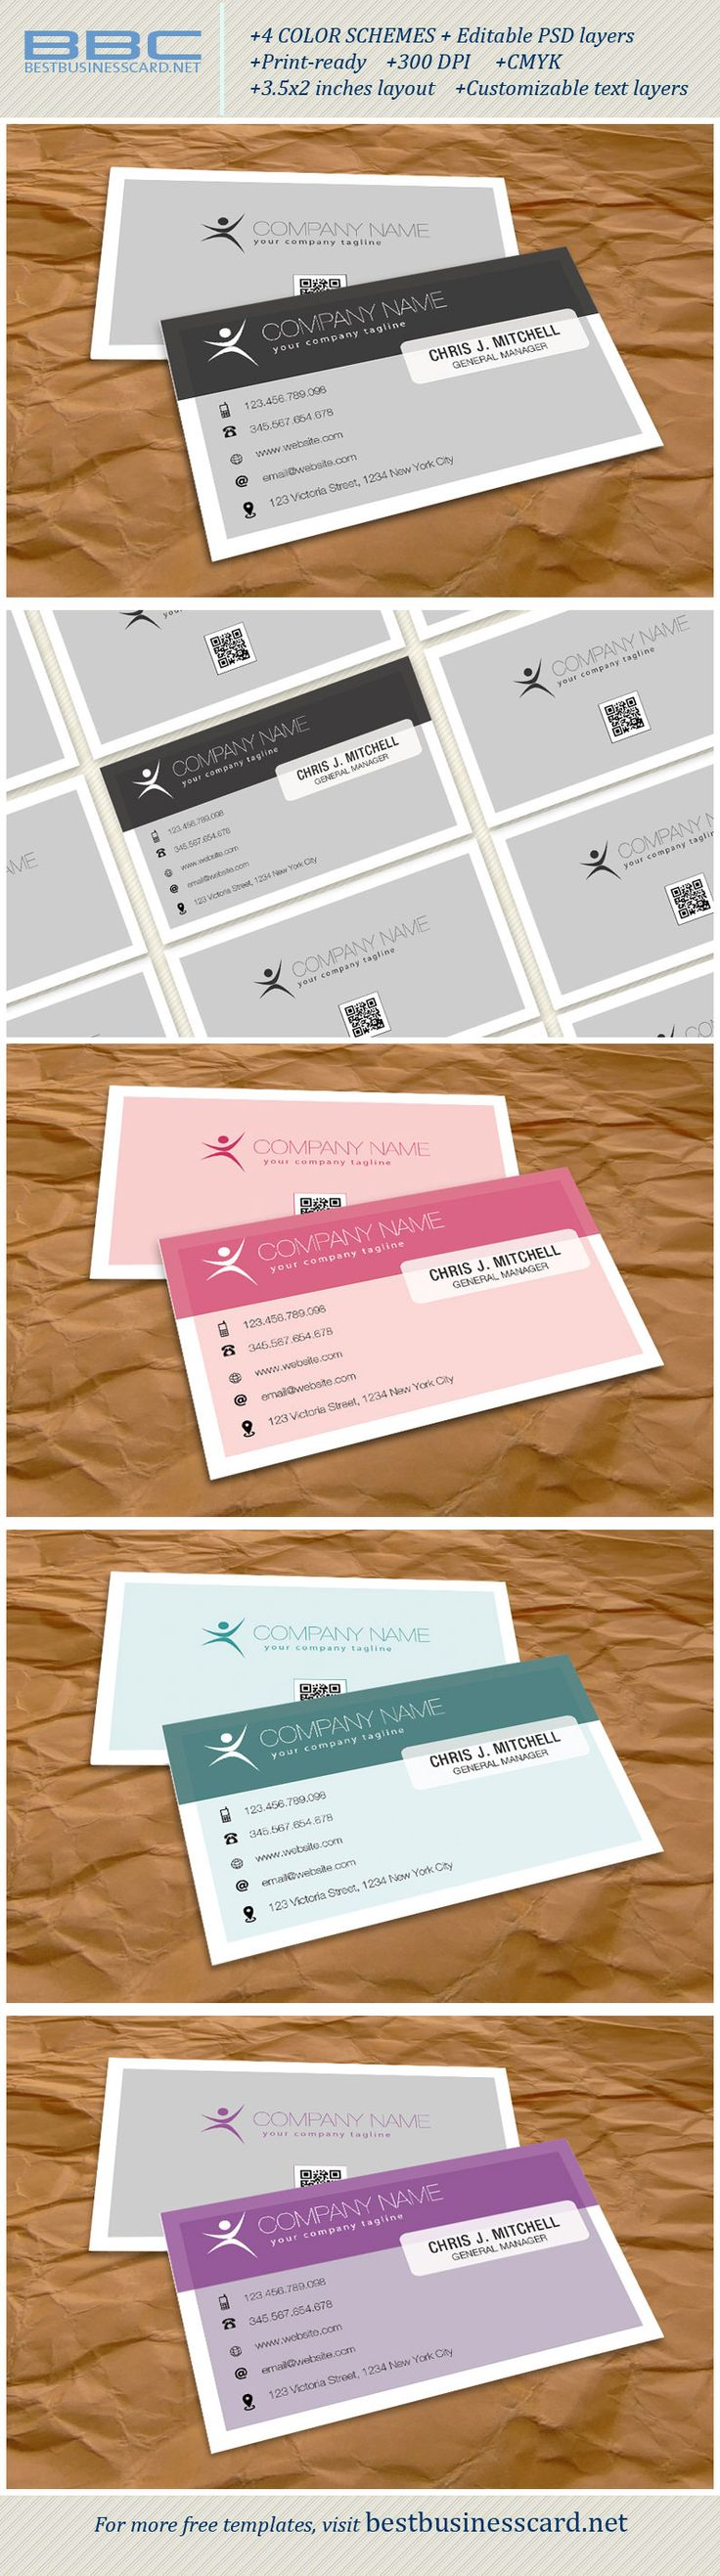 Best 25 minimalist business cards ideas on pinterest business best 25 minimalist business cards ideas on pinterest business cards business card design and simple business cards magicingreecefo Gallery